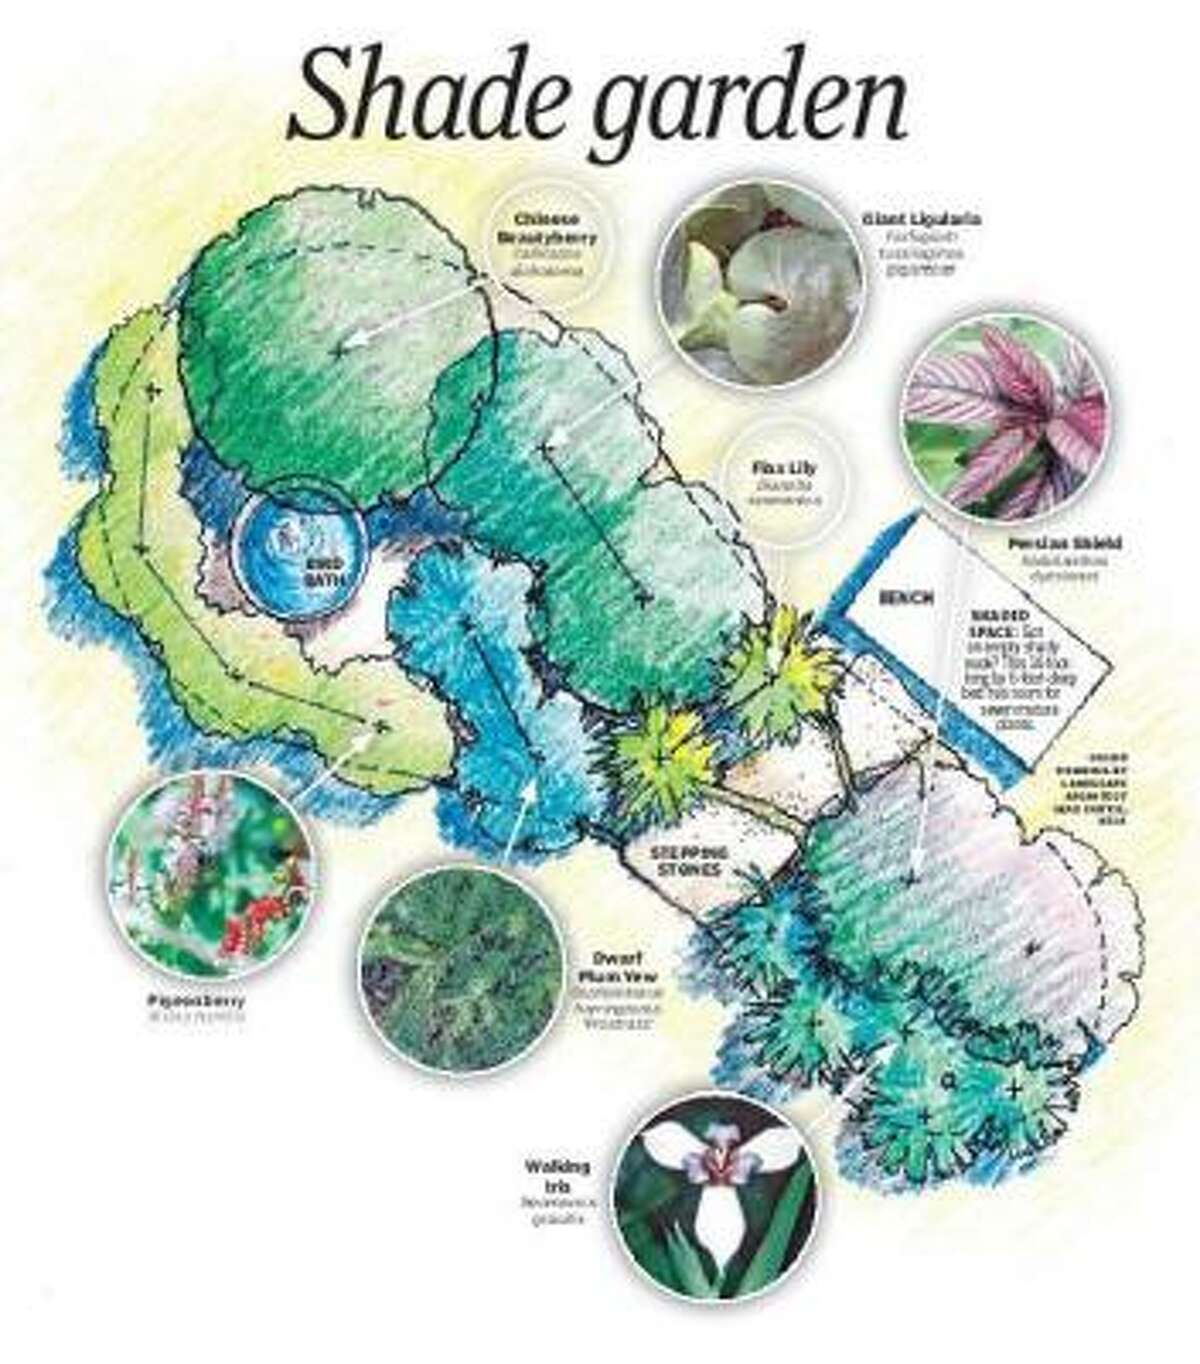 """To get a full-sized version of this garden guide, please click on the link """"Kathy Huber's shade garden design"""" below, under MORE ON BULB MART."""